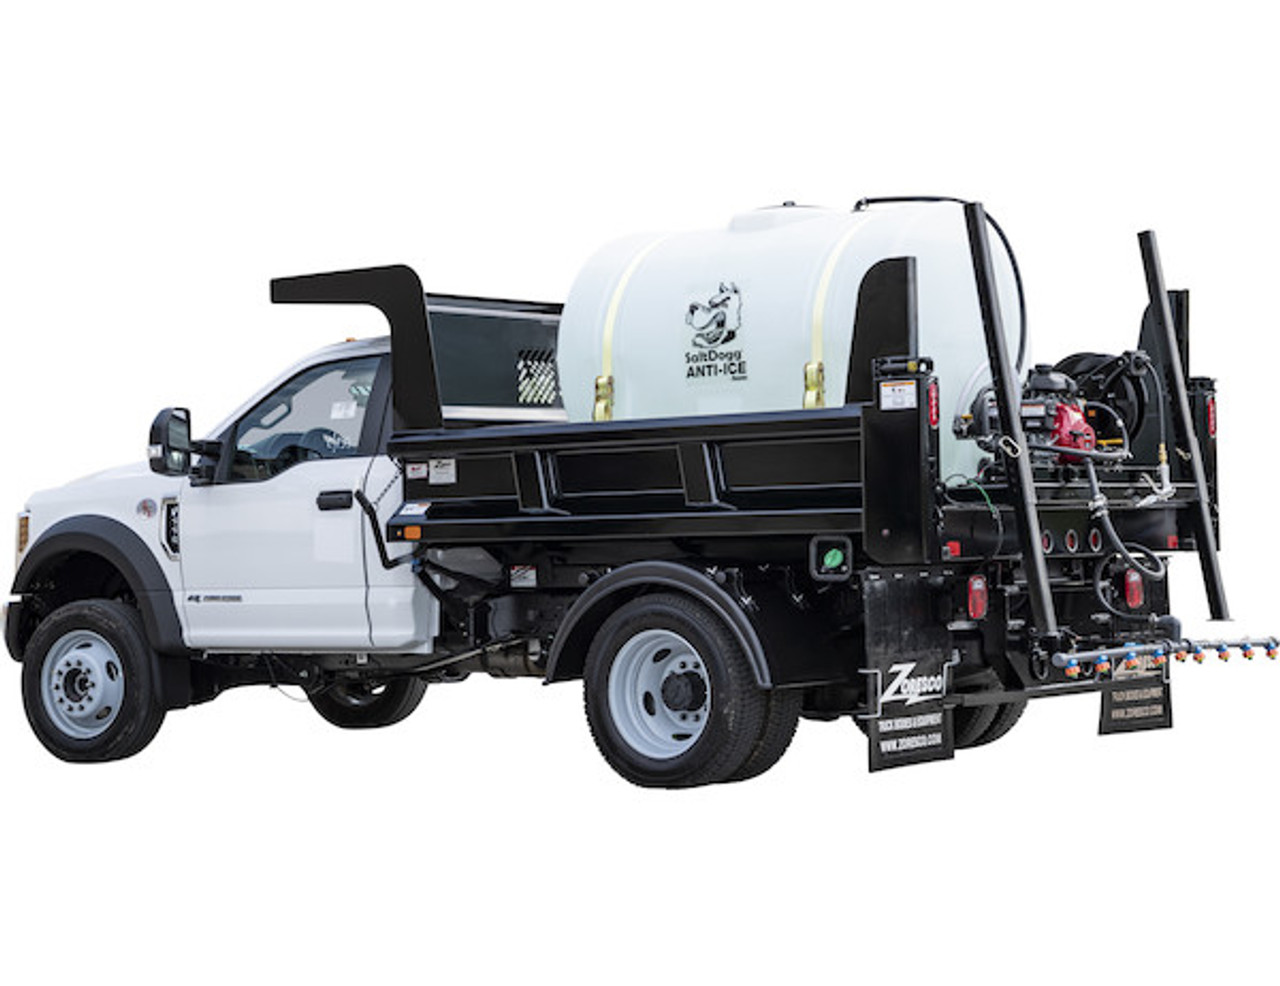 6191120 BUYERS SALTDOGG 550 GALLON GAS-POWERED ANTI-ICE SYSTEM WITH MANUAL APPLICATION RATE CONTROL 4